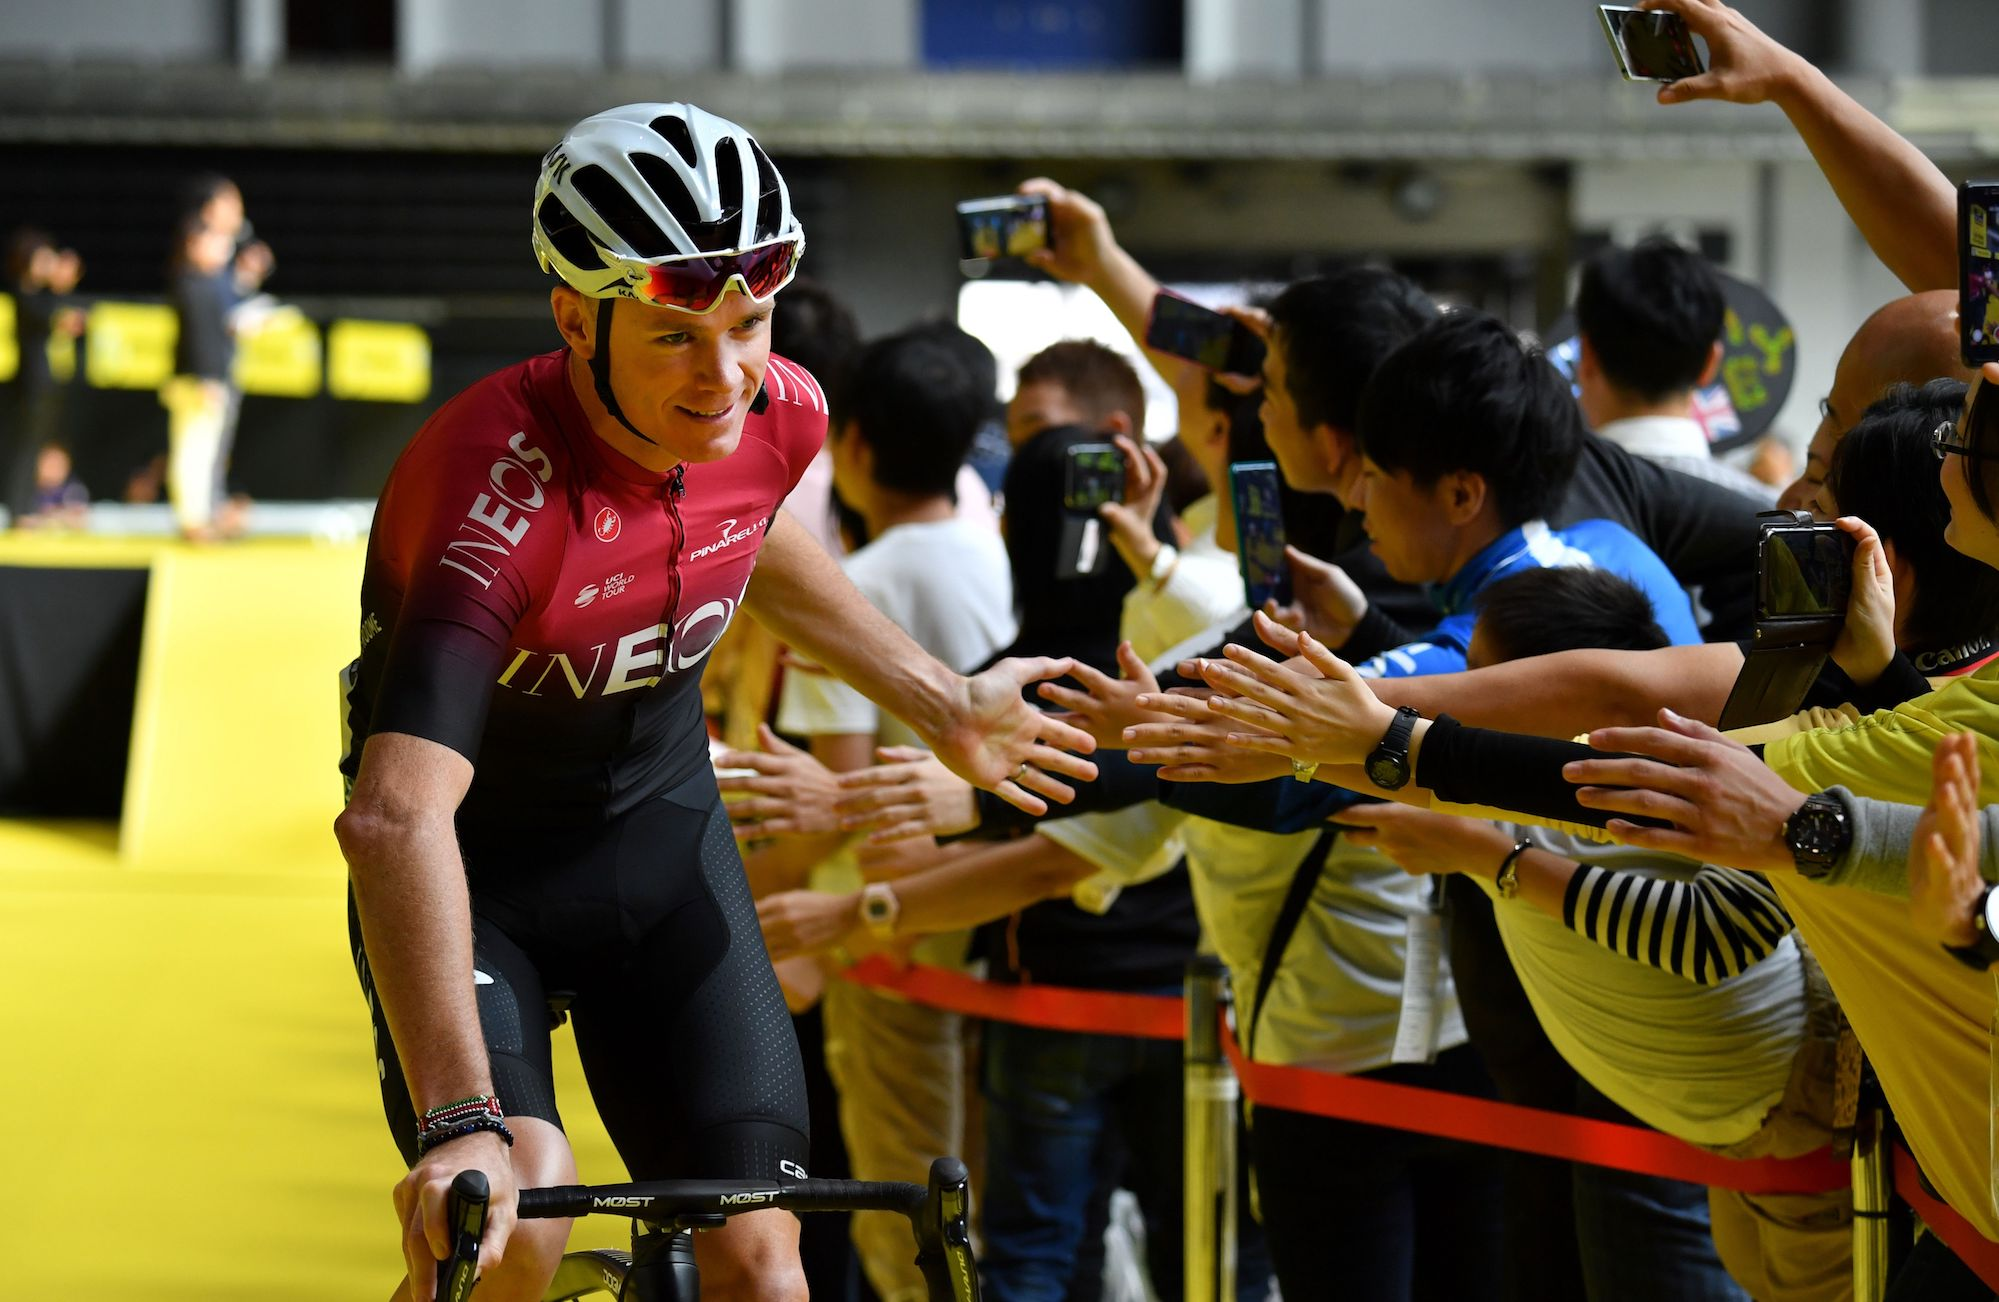 Chris Froome announces first race back after injury